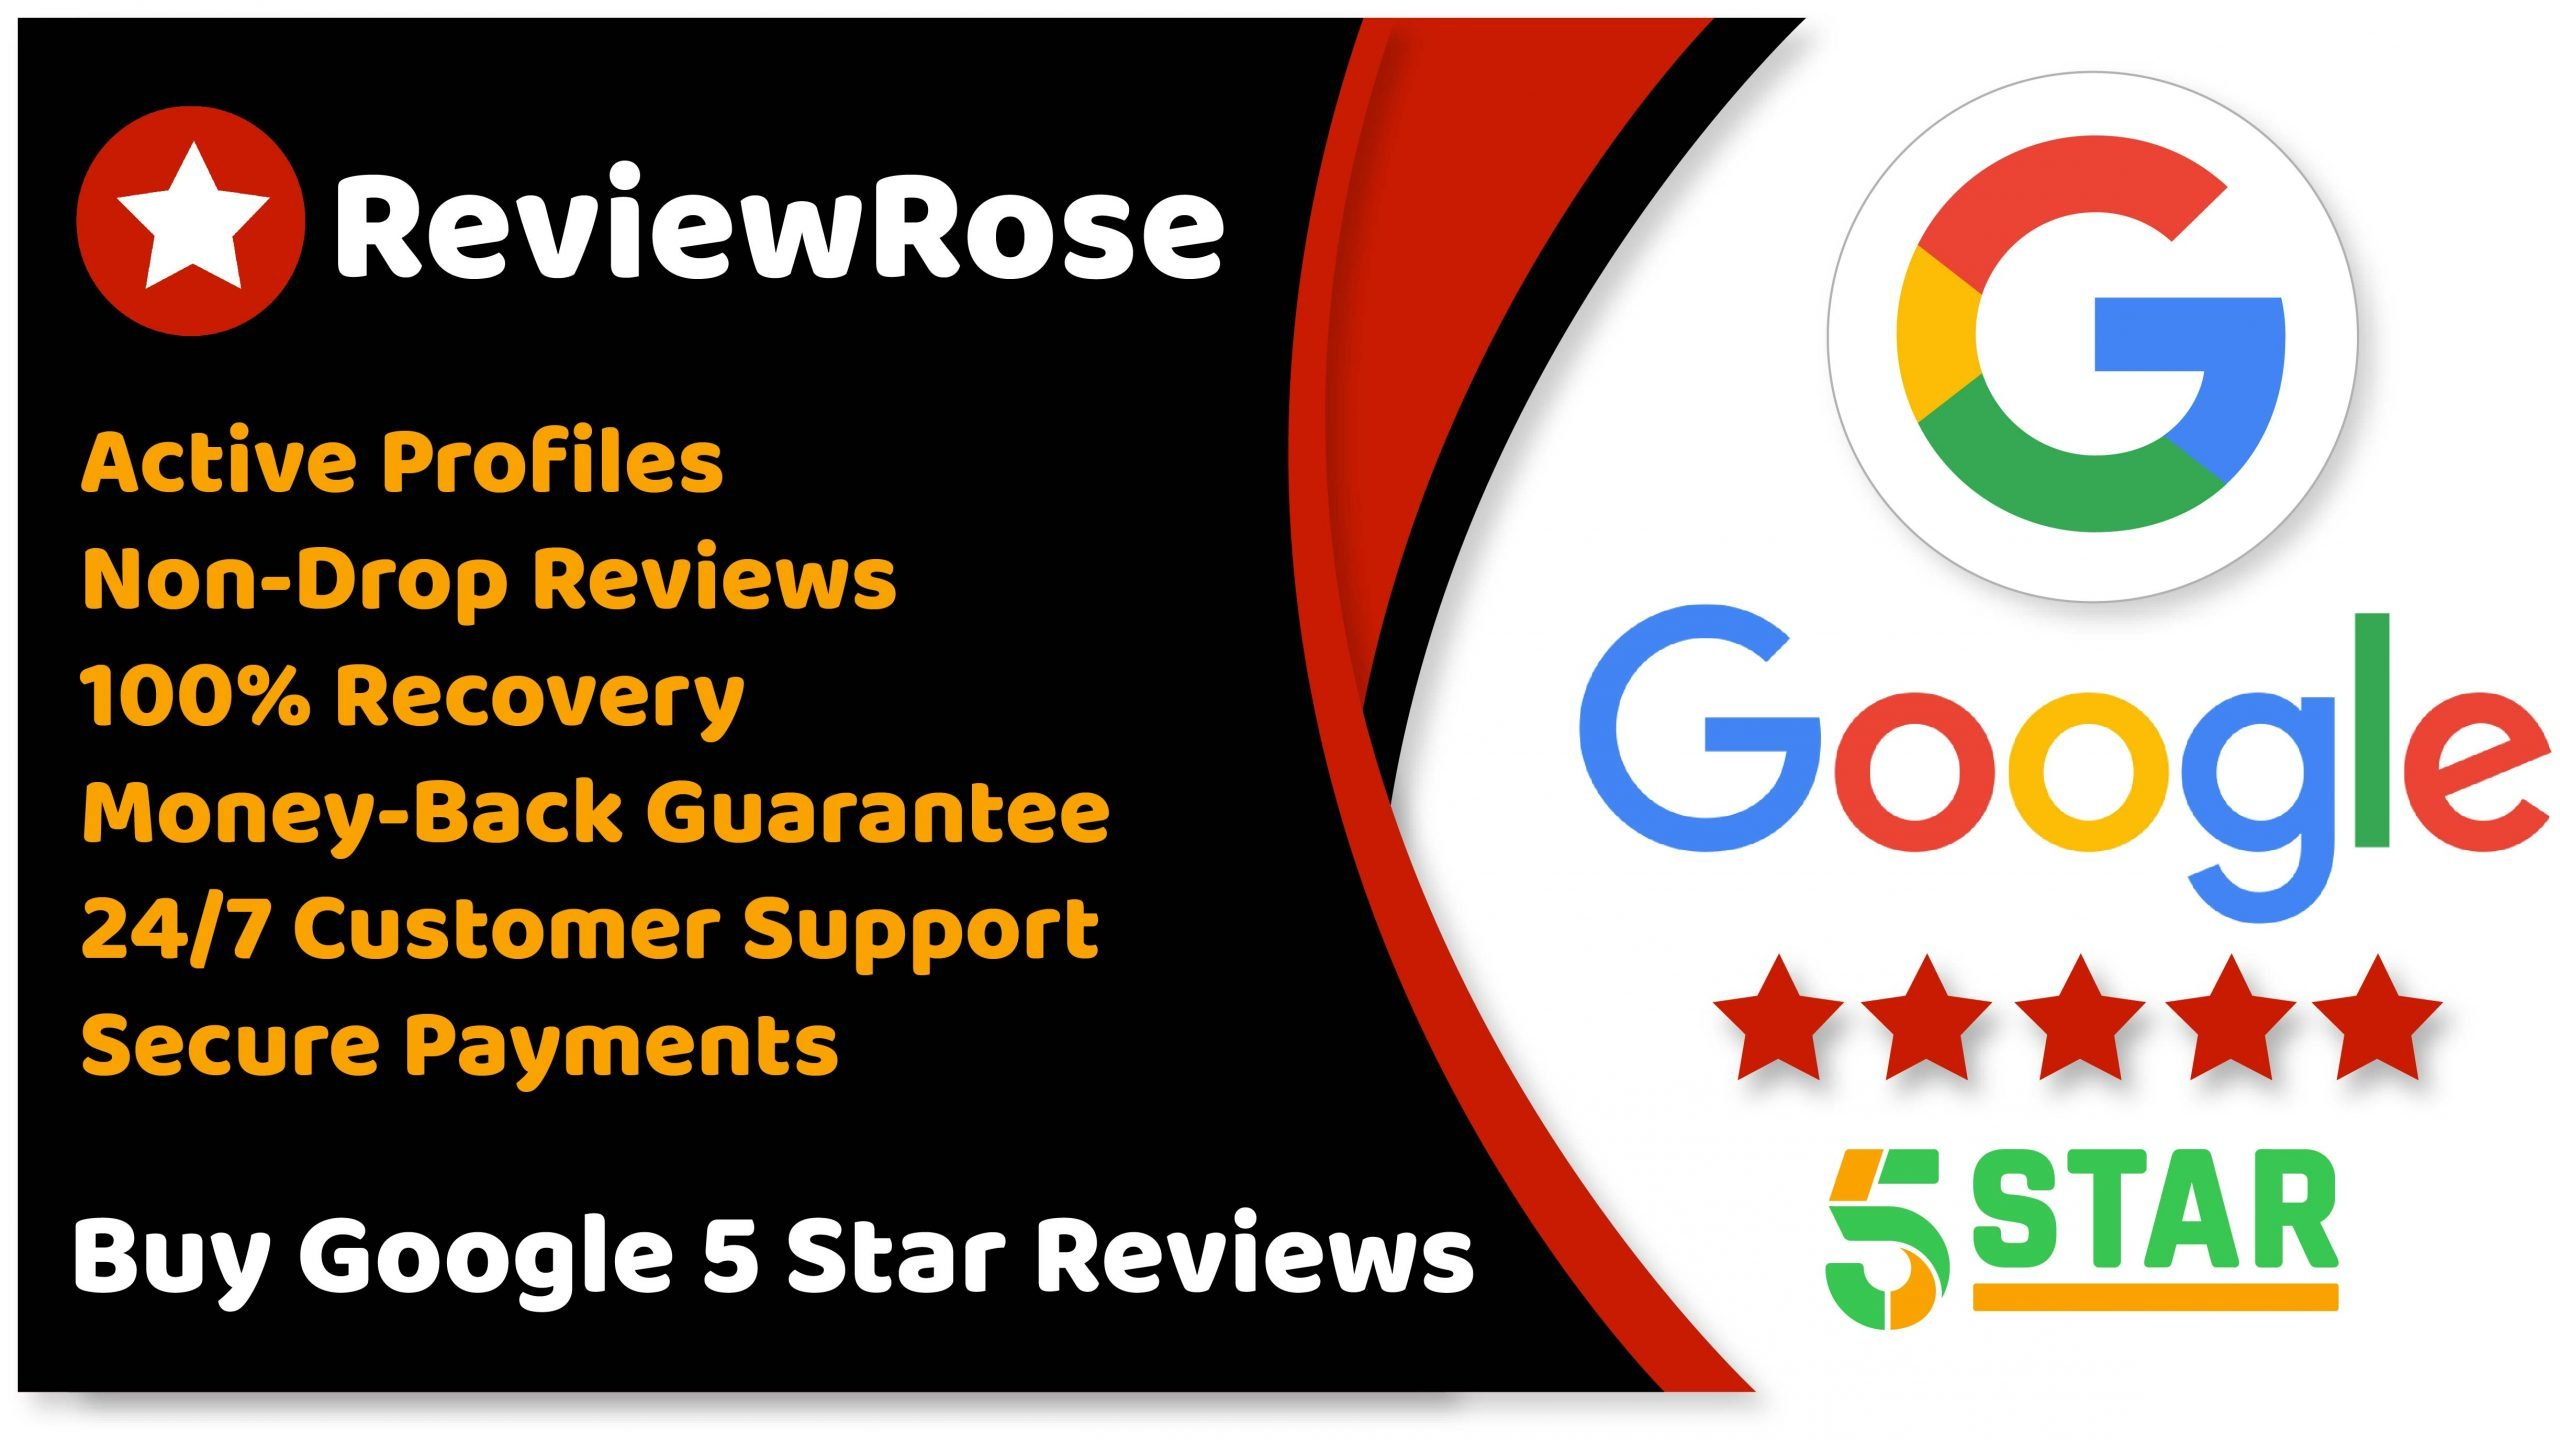 Buy Google 5 Star ReviewsBuy Google 5 Star Reviews